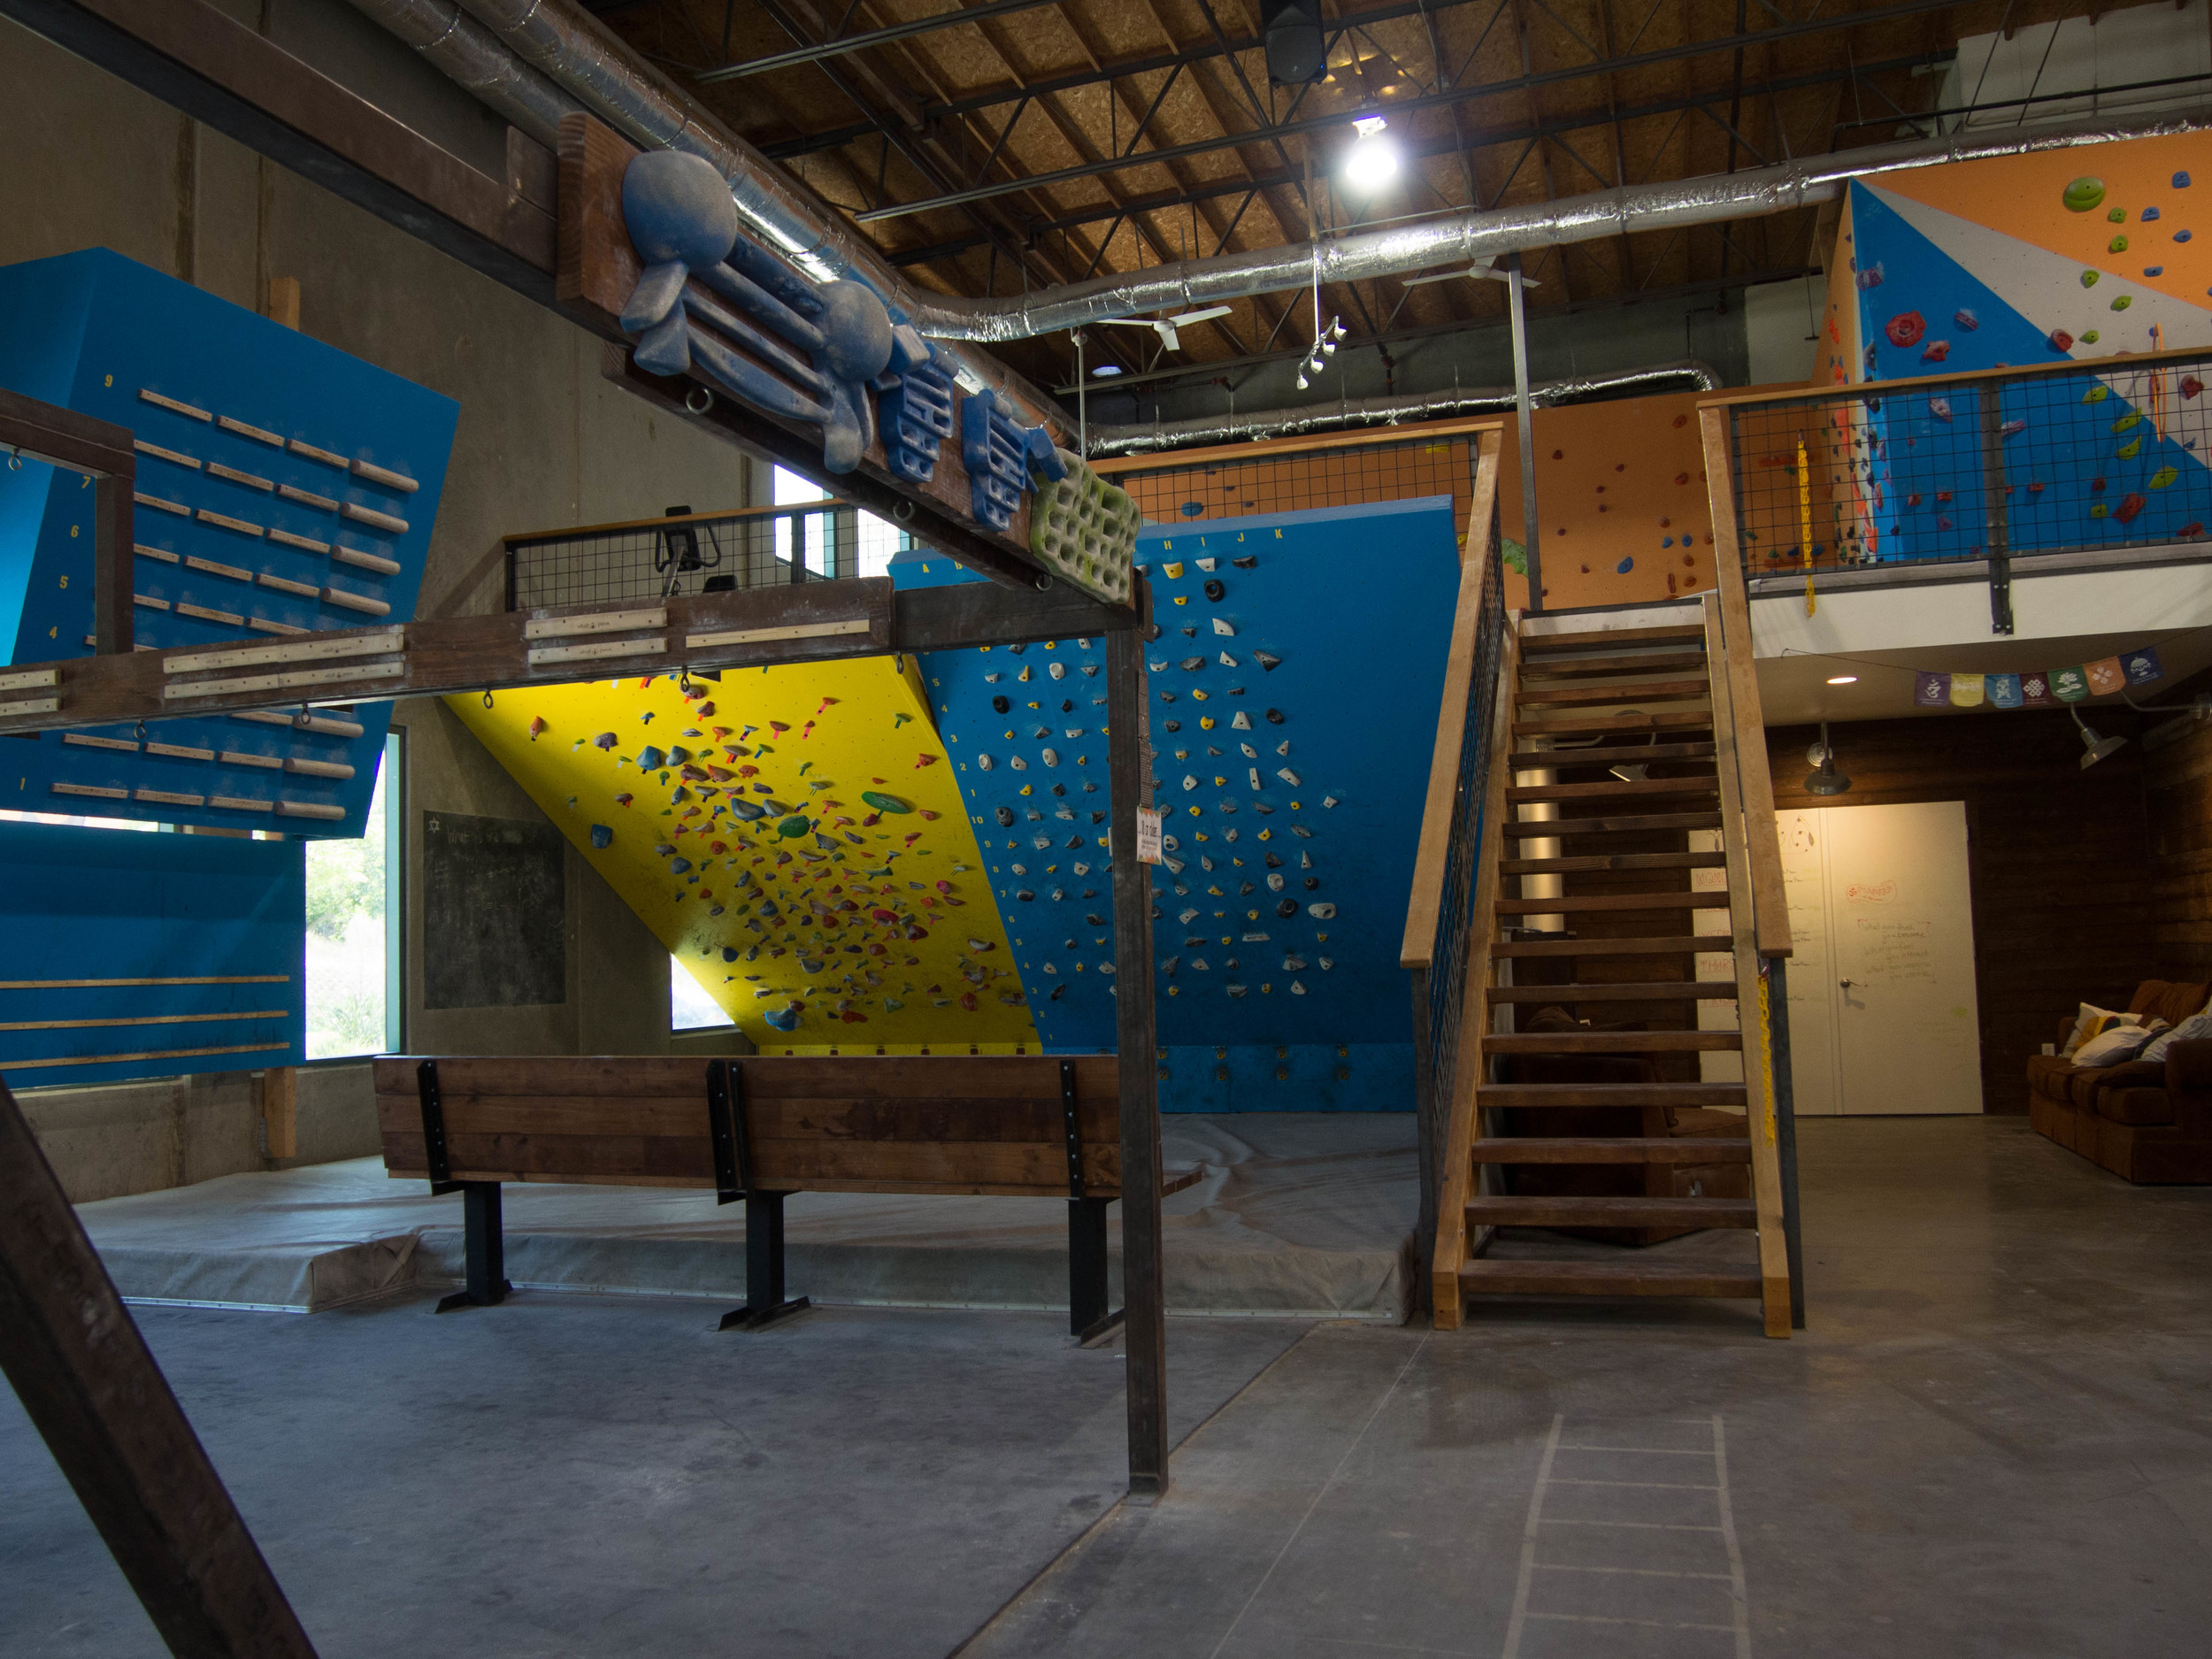 Bouldering – The Wall Climbing Gym